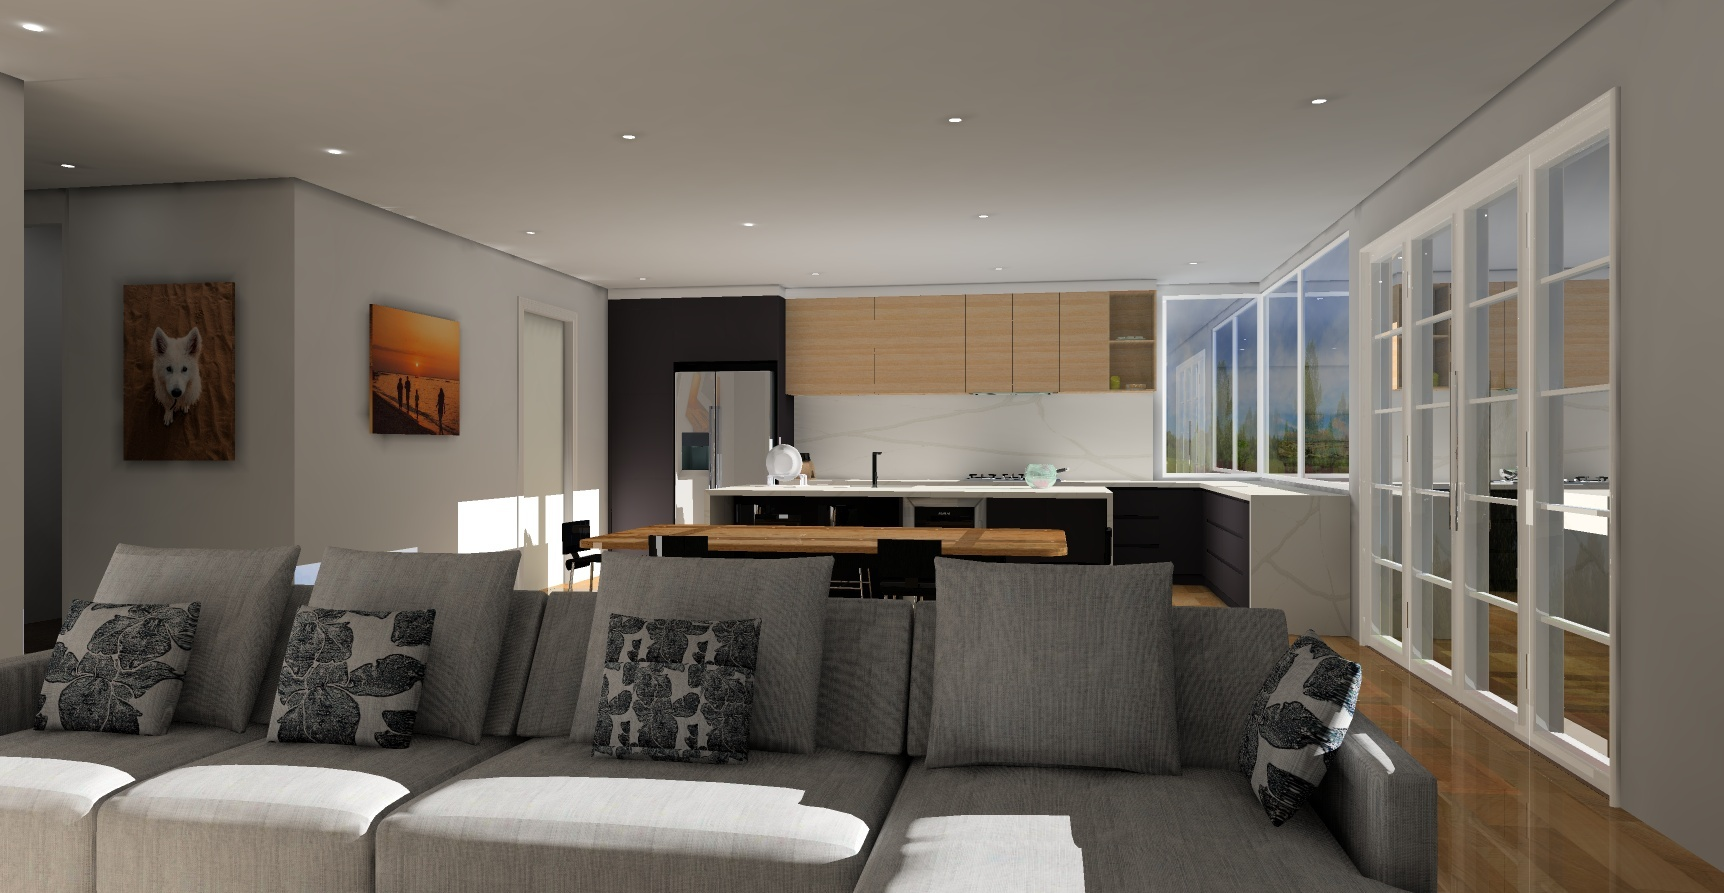 kitchen, dining and living space KD Max render